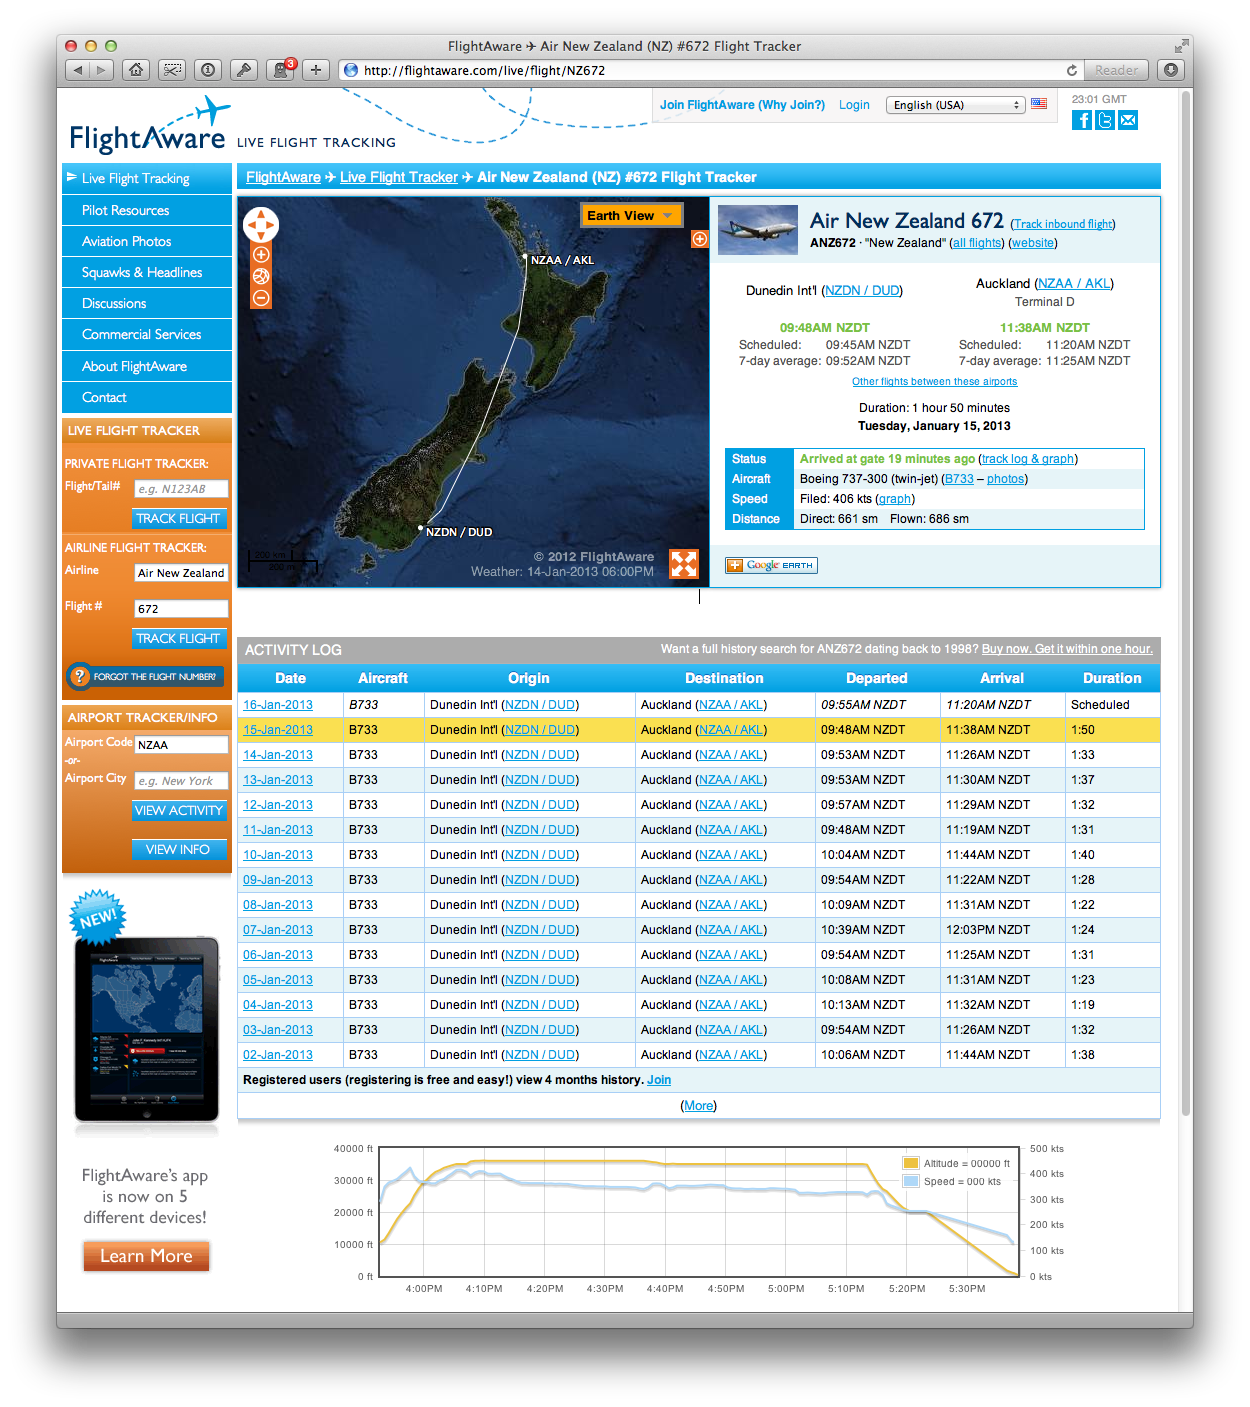 FlightAware New Zealand